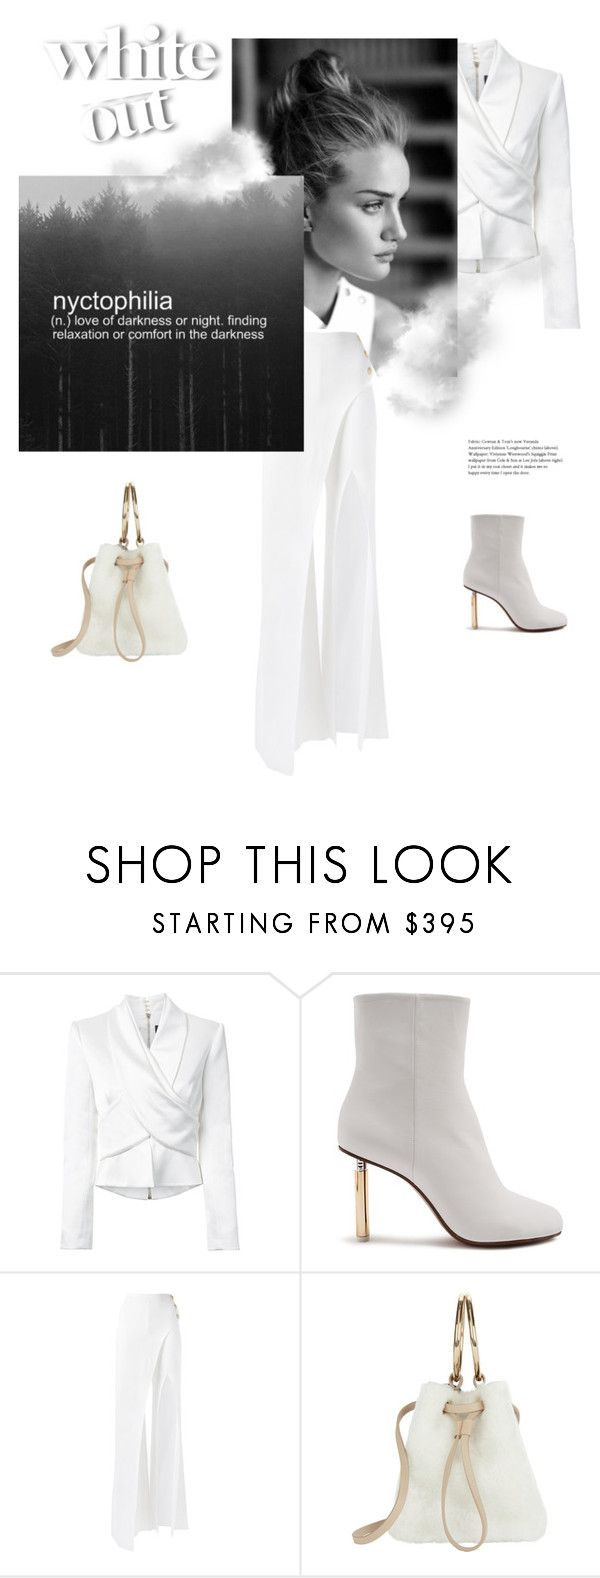 """nyctophilia"" by gabrielleleroy ❤ liked on Polyvore featuring Balmain, Vetements, Maison Boinet, monochrome, allwhite and polyvoreeditorial"